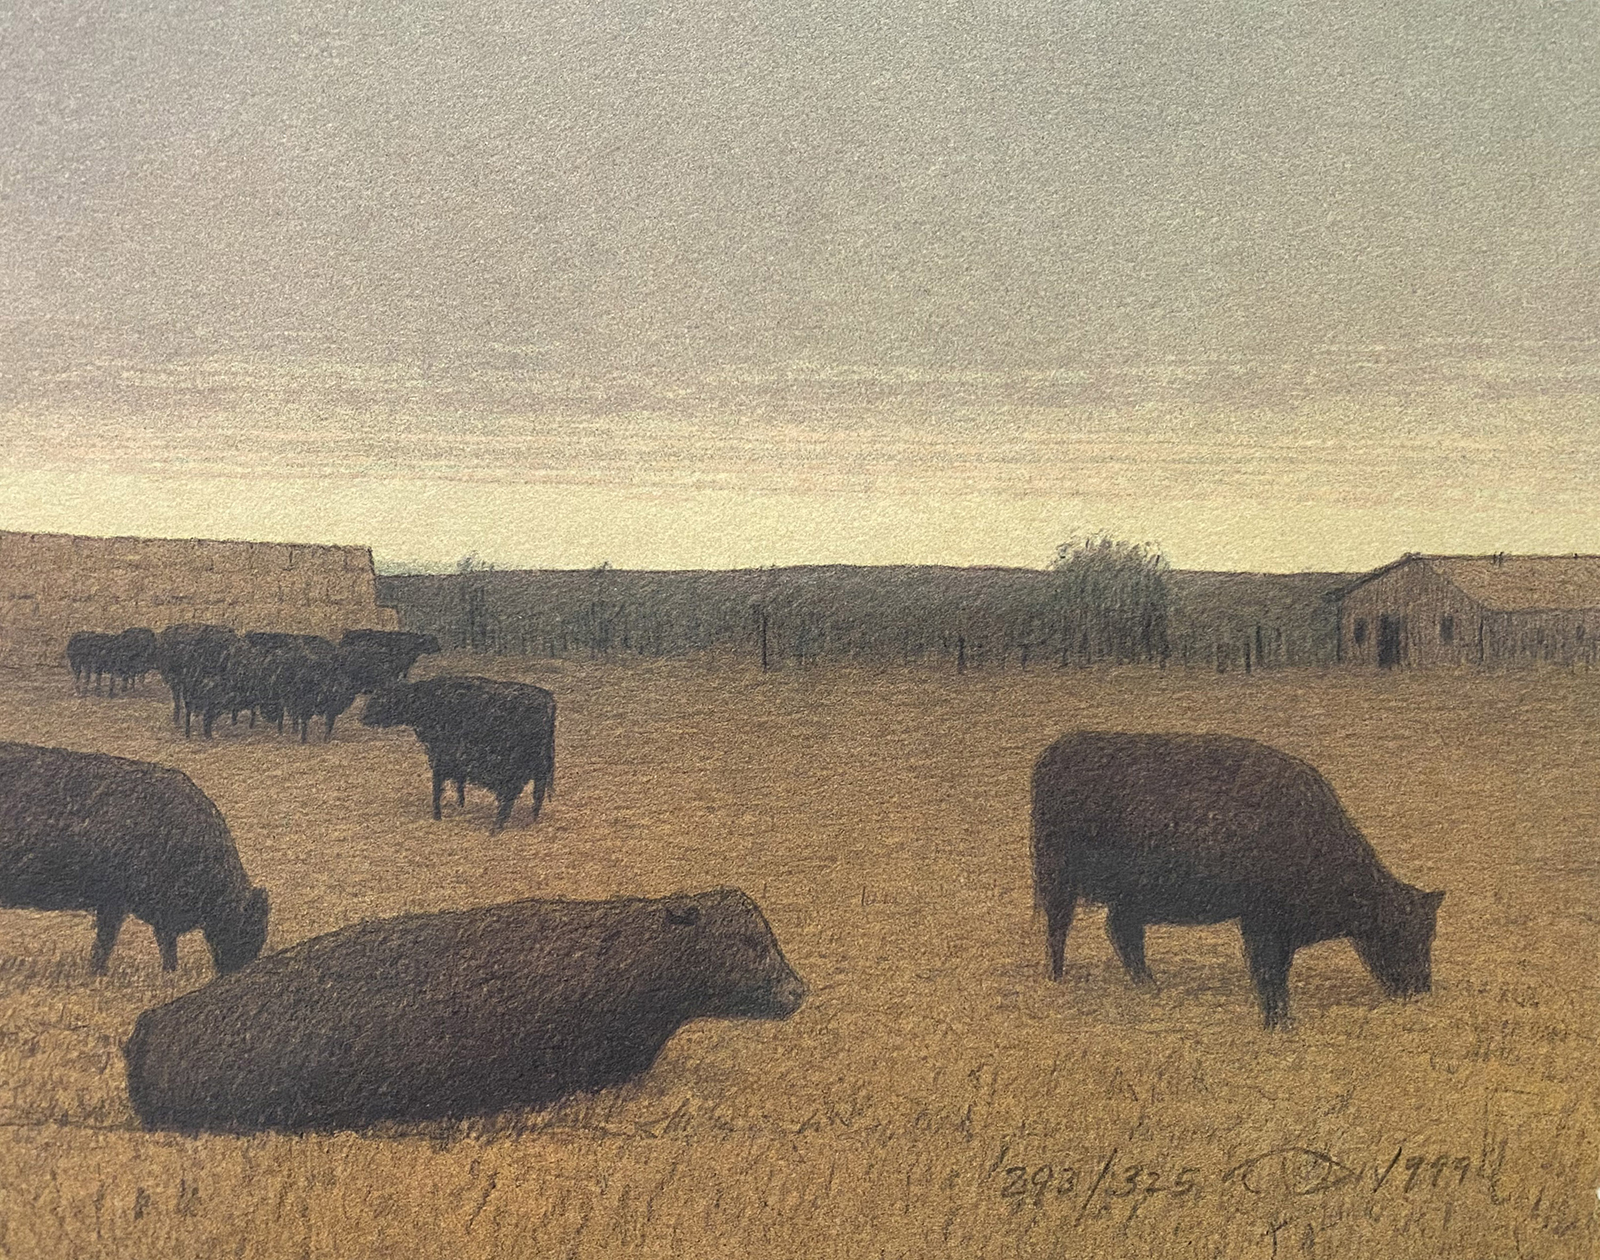 Russell Chatham painted Winter Pasture